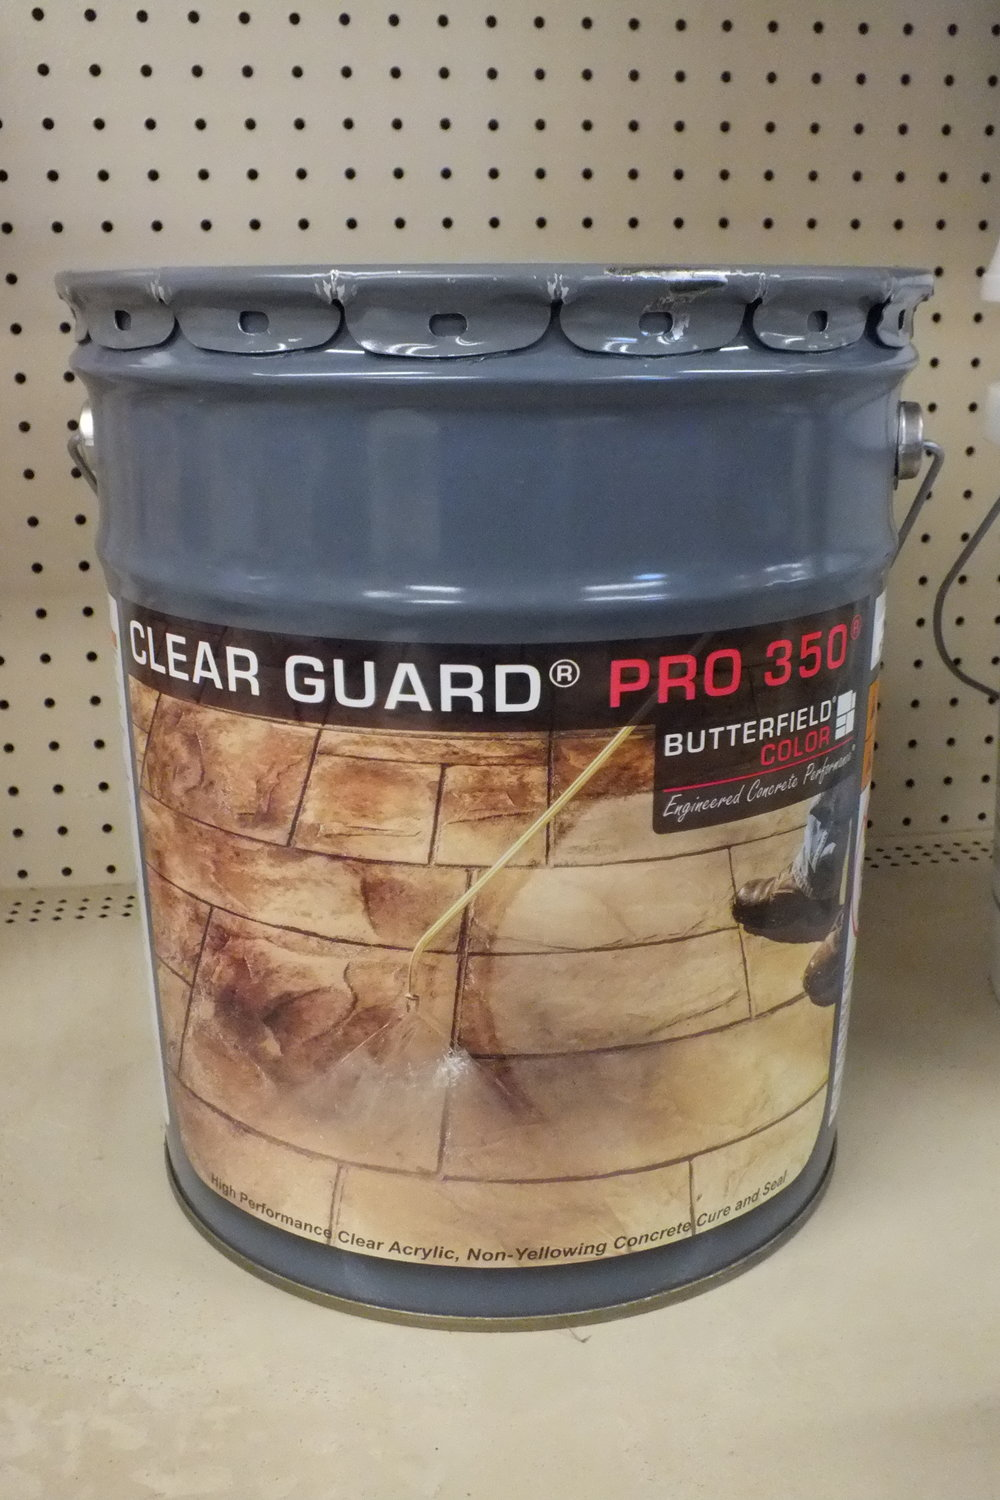 Butterfield Clear Guard Pro 350      -